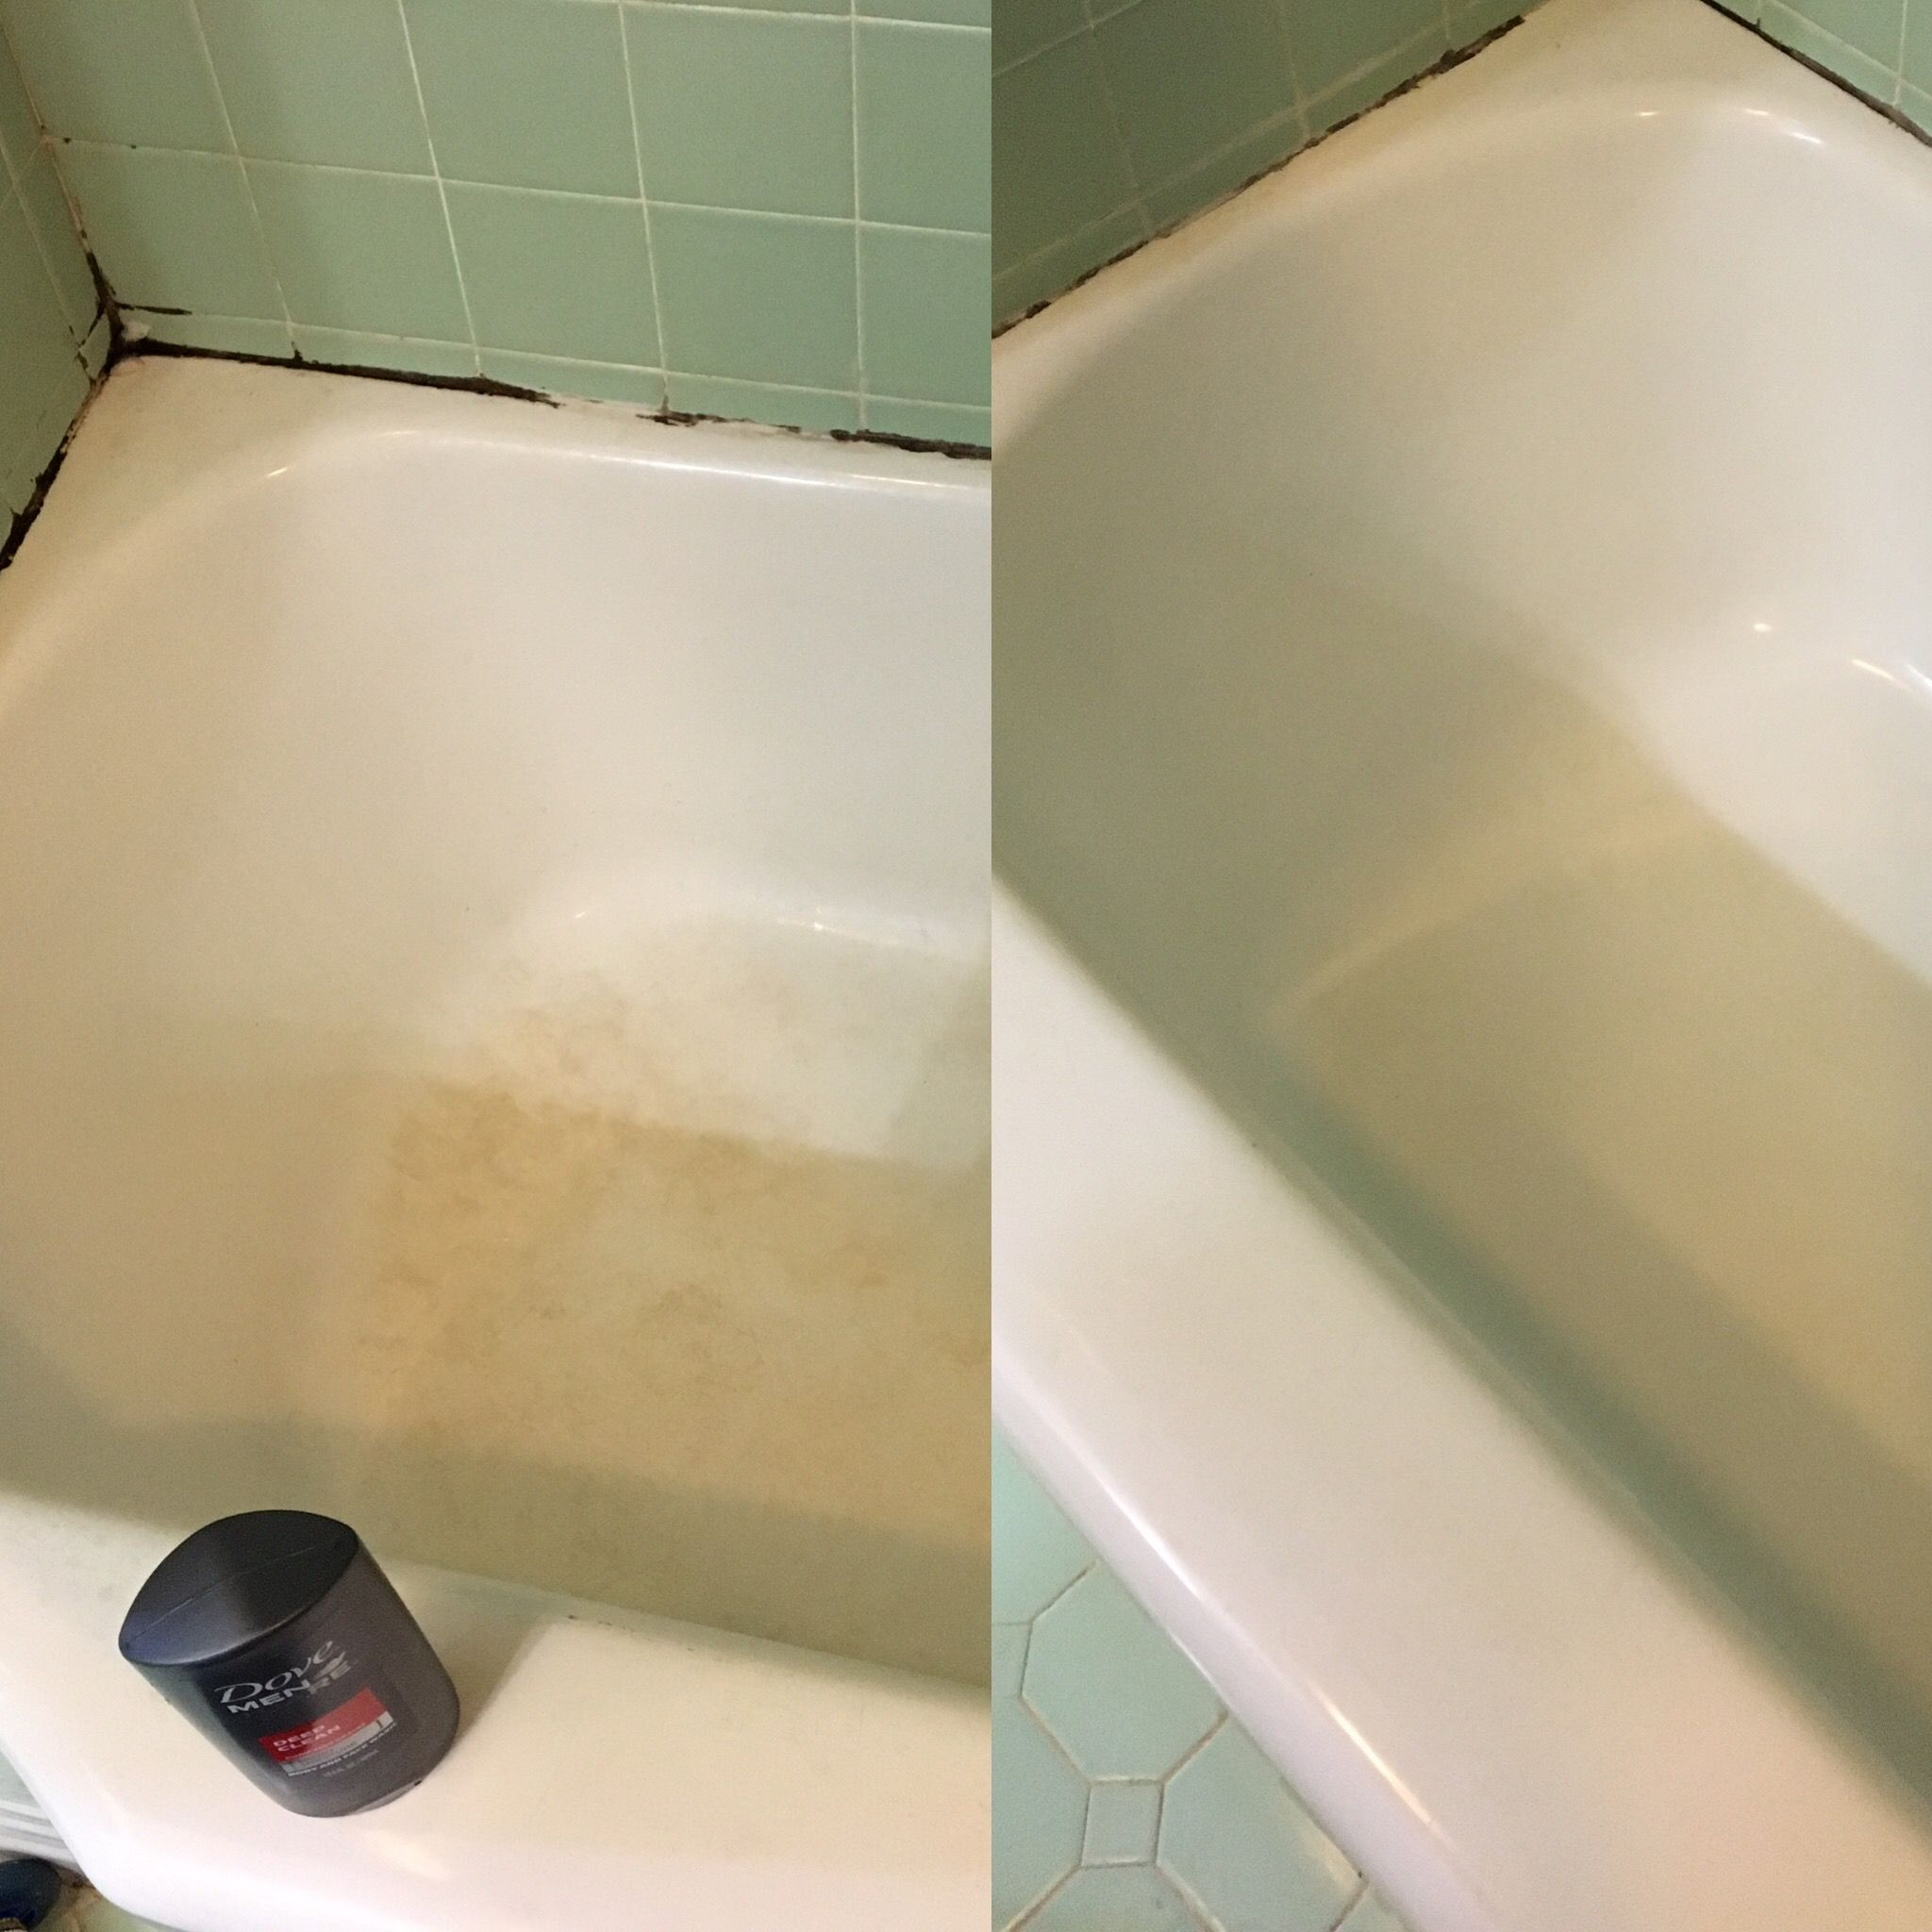 Bathroom caulk remover - 1950s Porcelain Tub Grout Cleaned W Barkeepers Friend And Grout Brush Tub Cleaned Then Stains